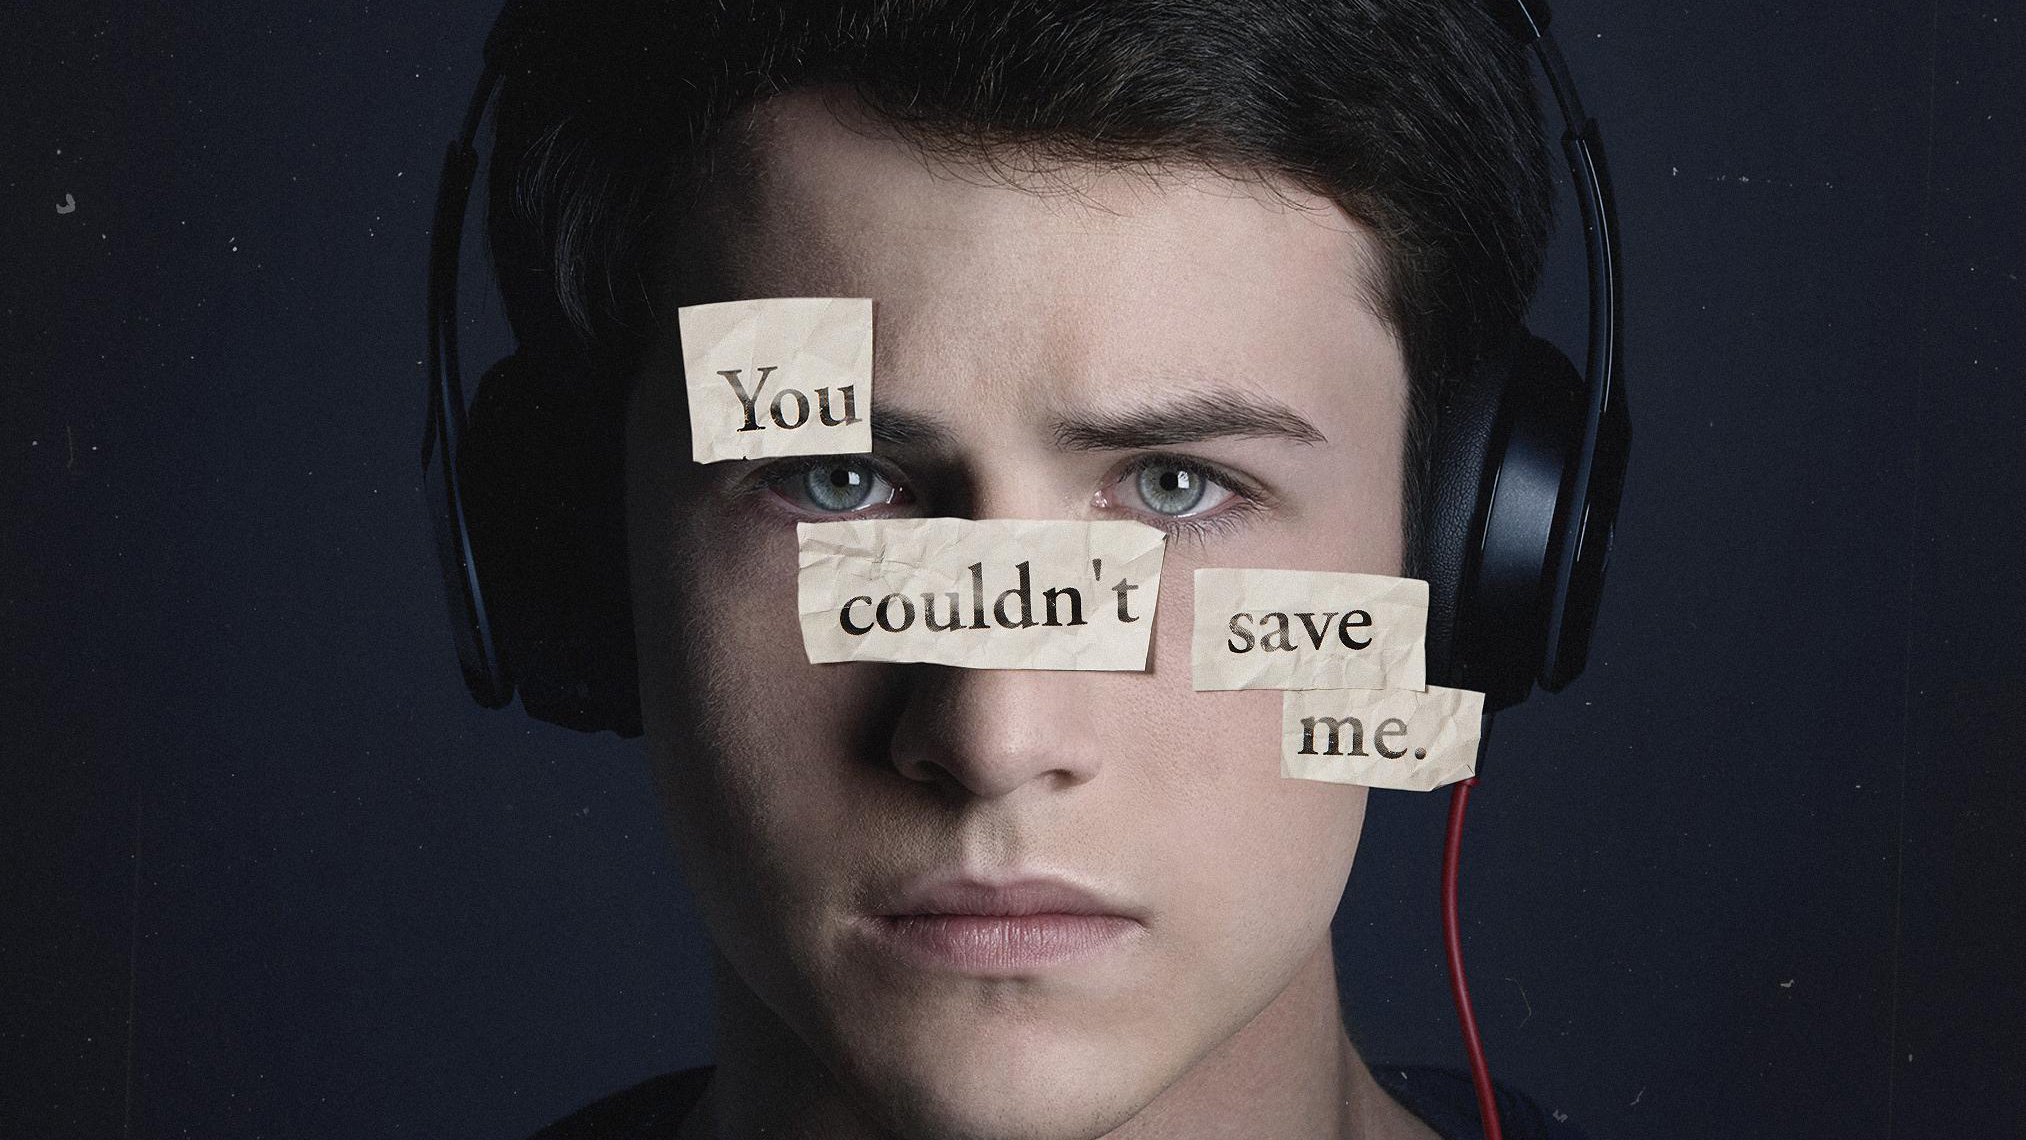 Clay 13 reasons why poster hd tv shows 4k wallpapers images backgrounds photos and pictures - 13 reasons why download ...